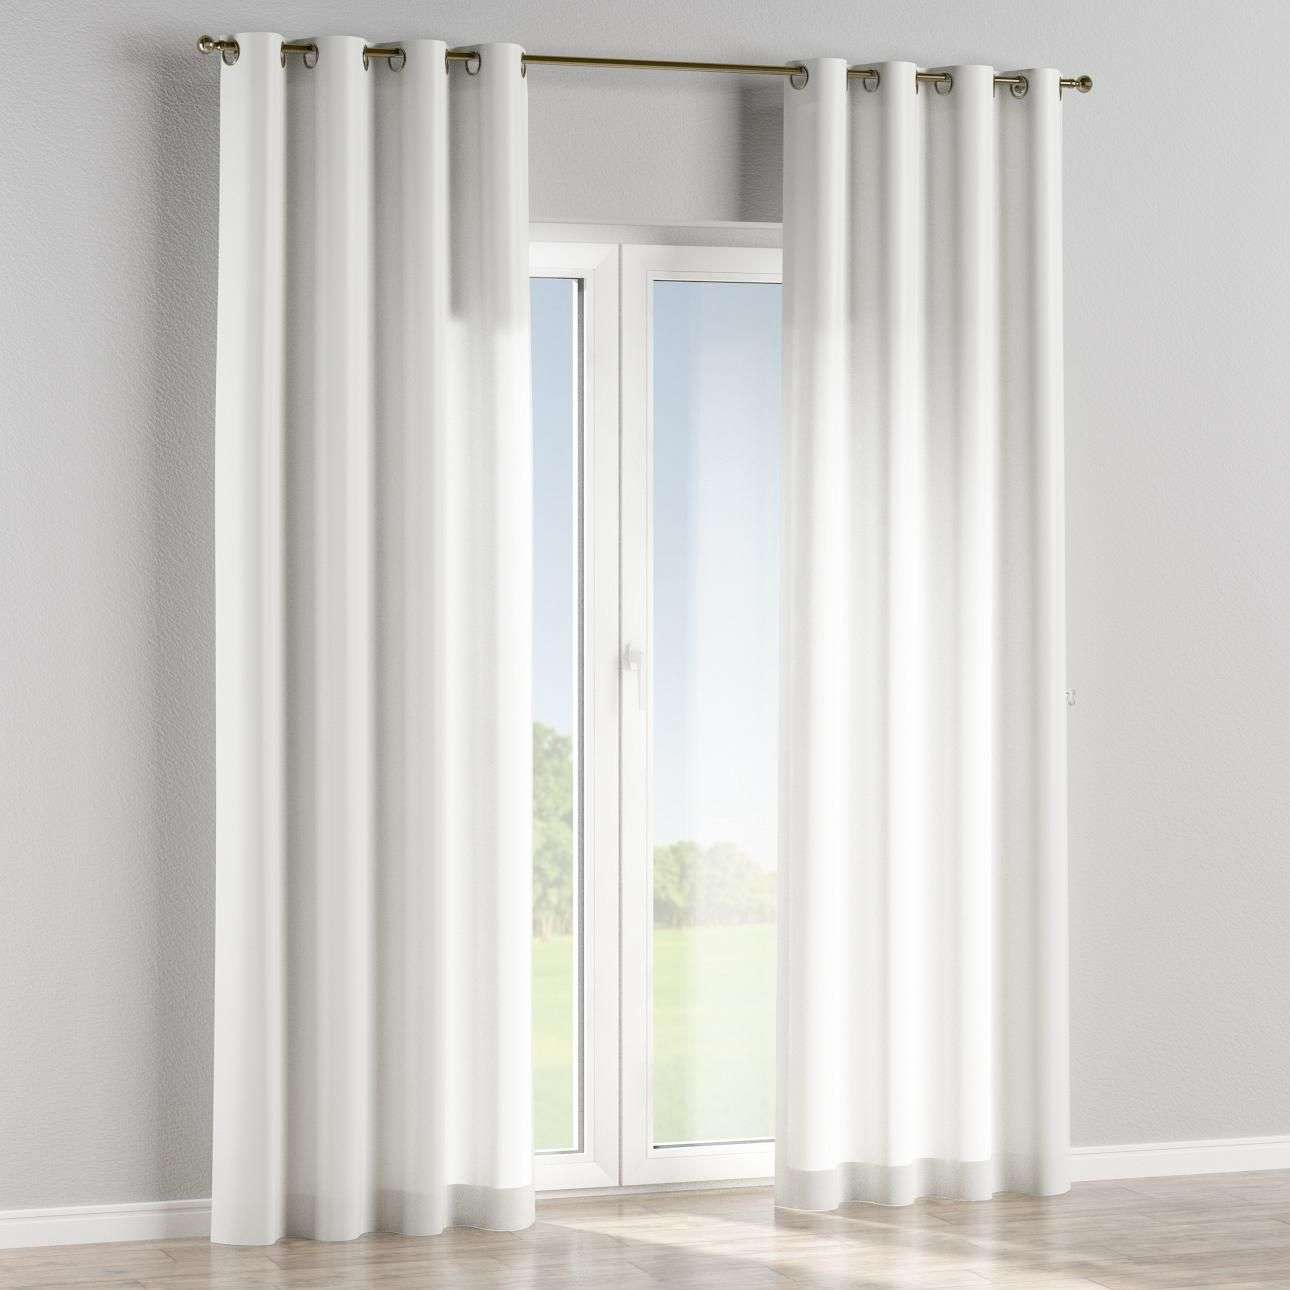 Eyelet lined curtains in collection Cardiff, fabric: 136-31